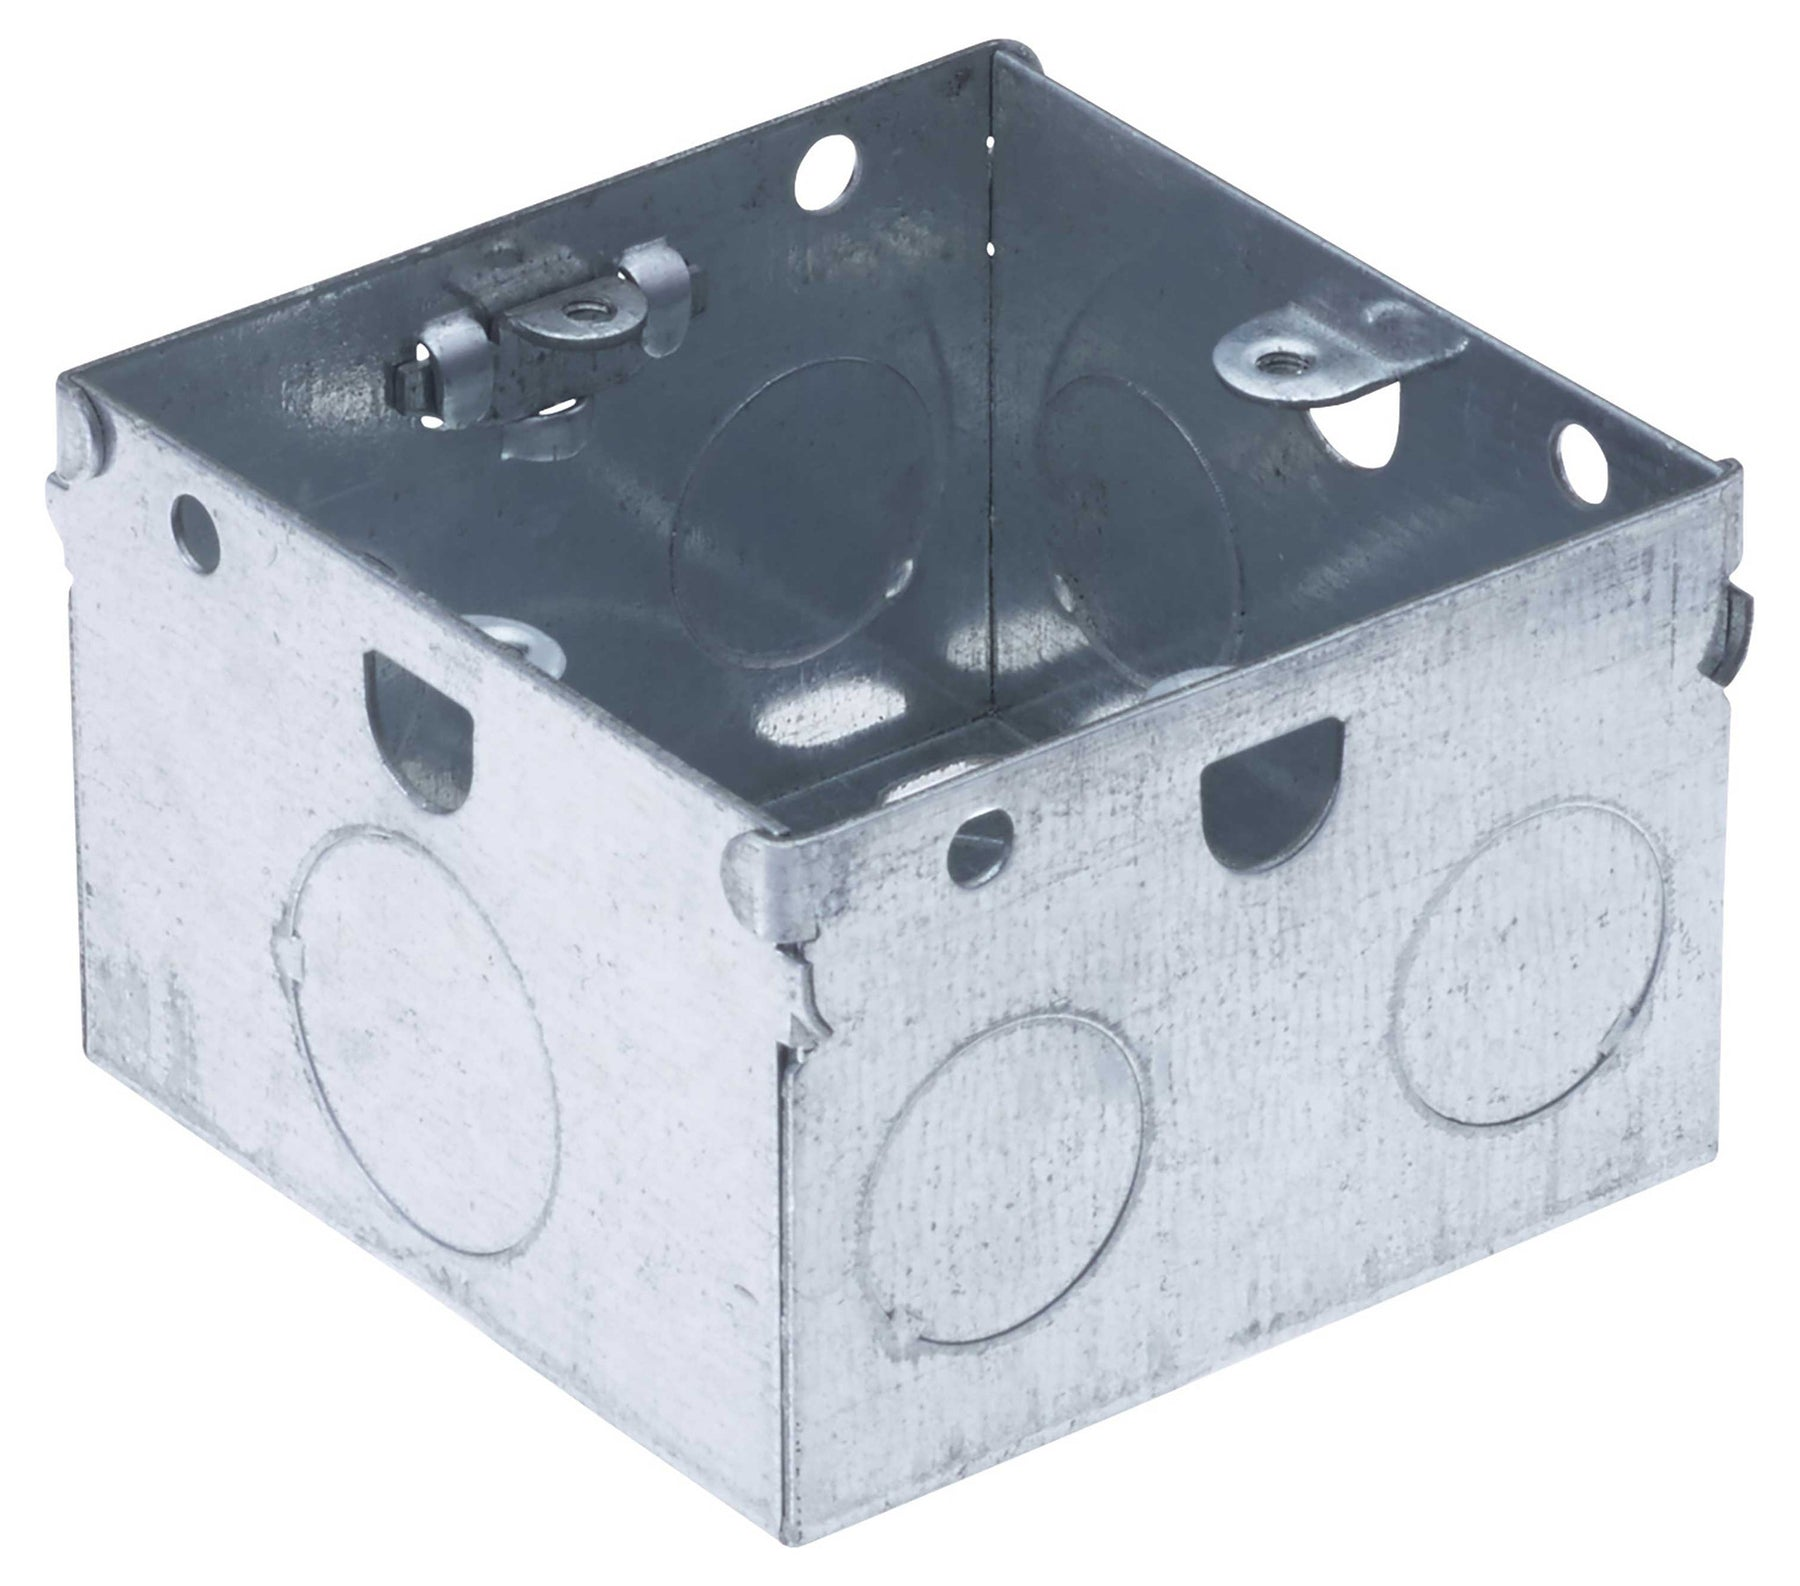 BG HGS06 METAL BOX 1 Gang 47MM GALVANISED PRESSED STEEL - BG - sparks-warehouse